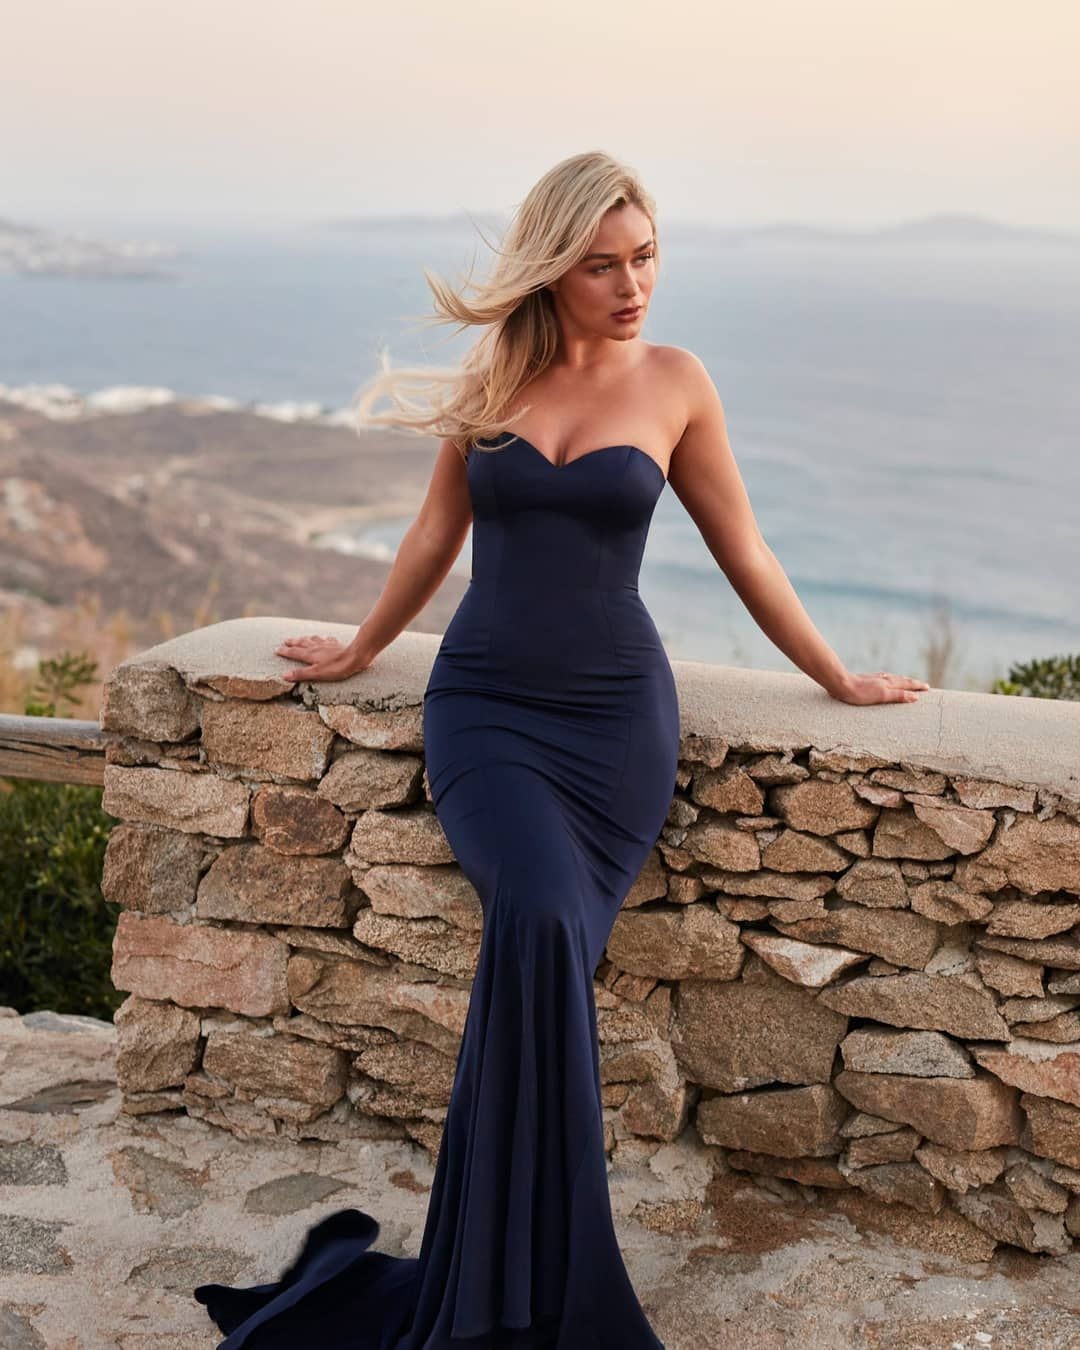 d643b9cbc6a5d Kiara strapless fitted sweetheart formal maxi dress, featuring a soft  stretch crepe satin with a fishtail hem for a stunning entrance to any  black tie event ...